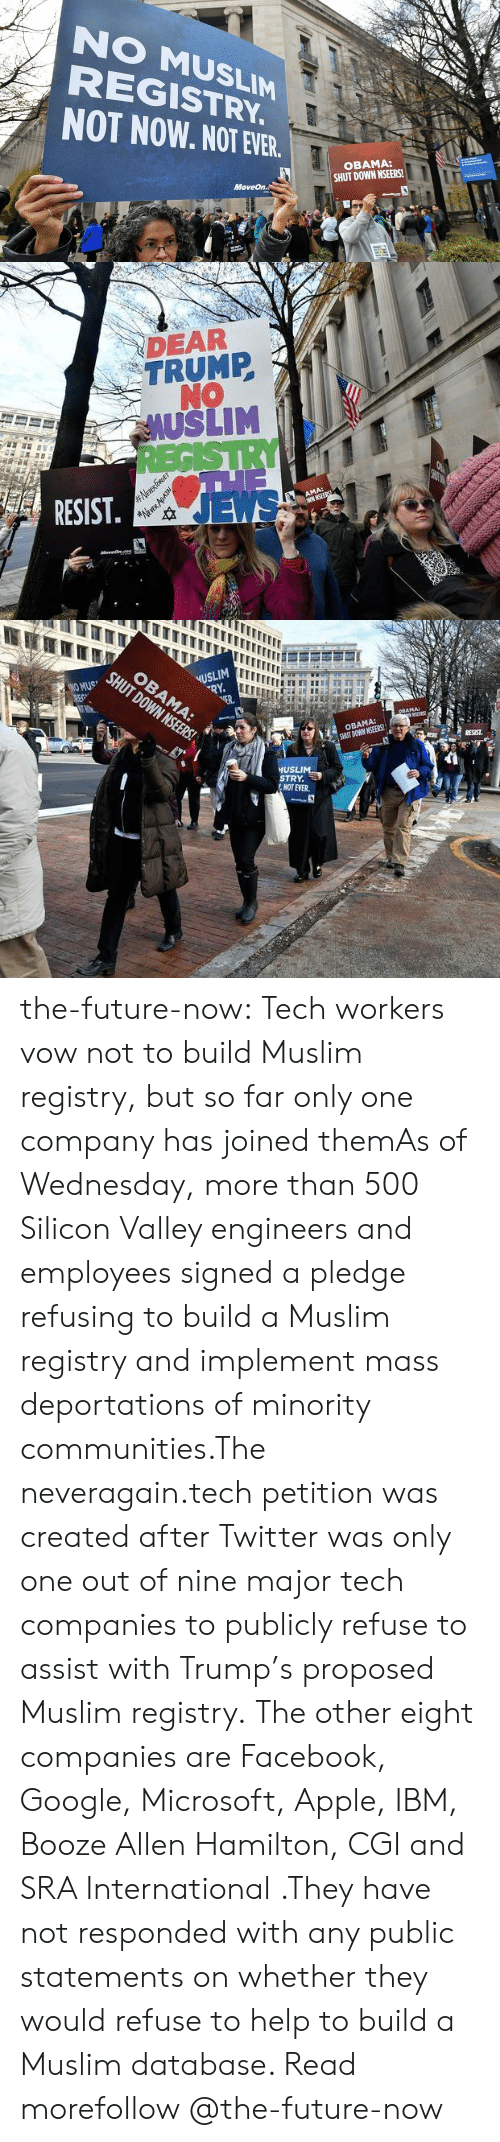 ibm: NO MUSLIM  REGISTRY  NOT NOW. NOT EVER  OBAMA:  SHUT DOWN NSEERS!  MoveOn.  cVICA   DEAR  TRUMP  NO  AUSLIM  RESIST  JEWS   USLIM  VER.  OBAMA:  SHUT DOWN NSEERS!  MUSLI  STRY  艺NOT EVER. the-future-now:  Tech workers vow not to build Muslim registry, but so far only one company has joined themAs of Wednesday, more than 500 Silicon Valley engineers and employees signed a pledge refusing  to build a Muslim registry and implement mass  deportations of minority communities.The neveragain.tech petition was created after Twitter was only one out of nine major tech companies  to publicly refuse to assist with Trump's proposed Muslim registry.  The other eight companies are Facebook, Google, Microsoft, Apple, IBM,  Booze Allen Hamilton, CGI and SRA International .They have not responded  with any public statements on whether they would refuse to help to build  a Muslim database. Read morefollow @the-future-now